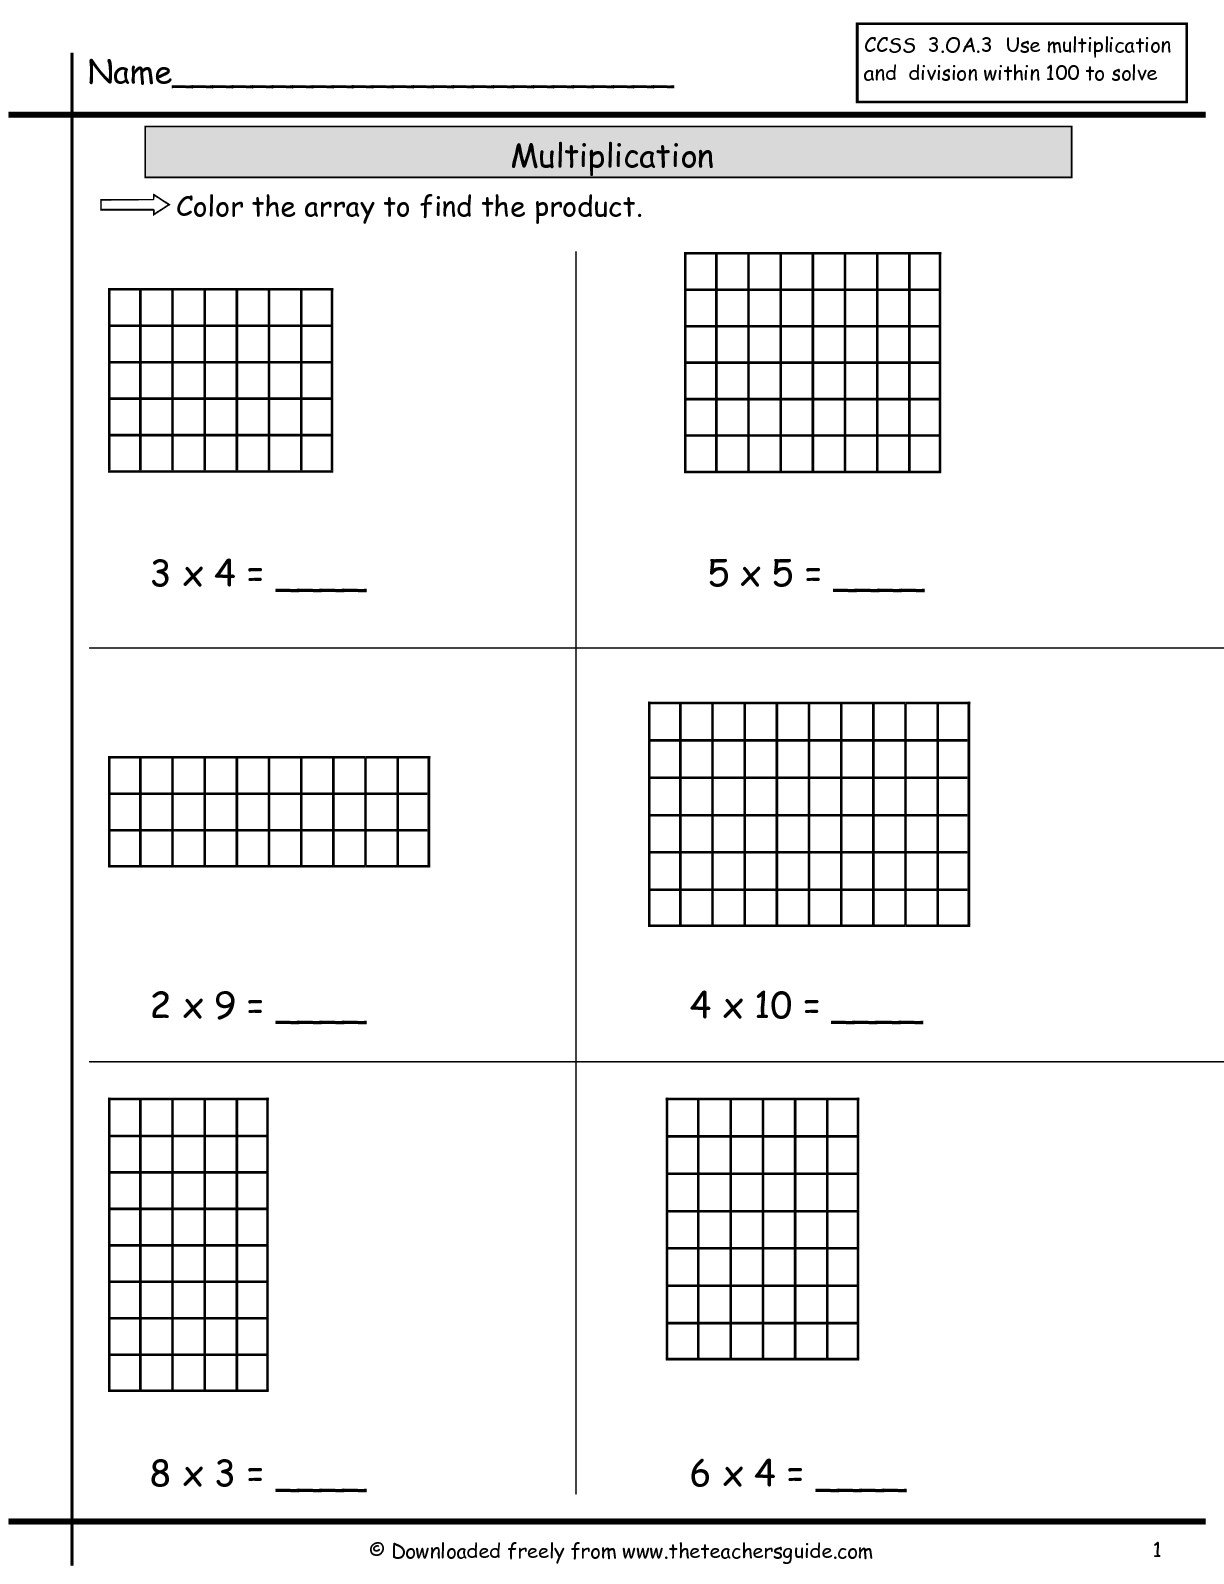 Multiplication Array Worksheets From The Teacher's Guide As Well As Arrays And Multiplying By 10 And 100 Worksheet